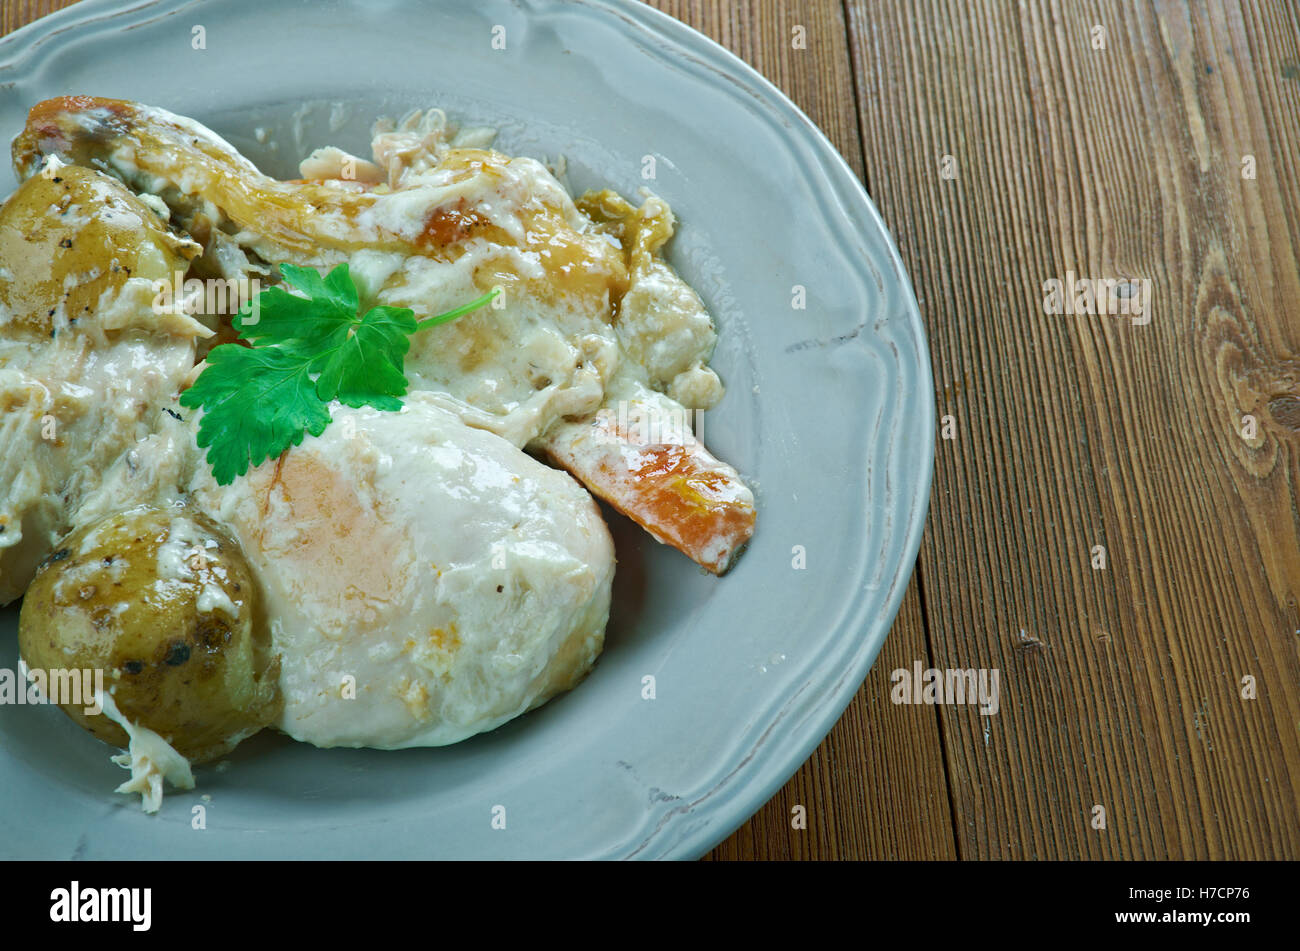 Slow Cooker Stock Photos & Slow Cooker Stock Images - Alamy